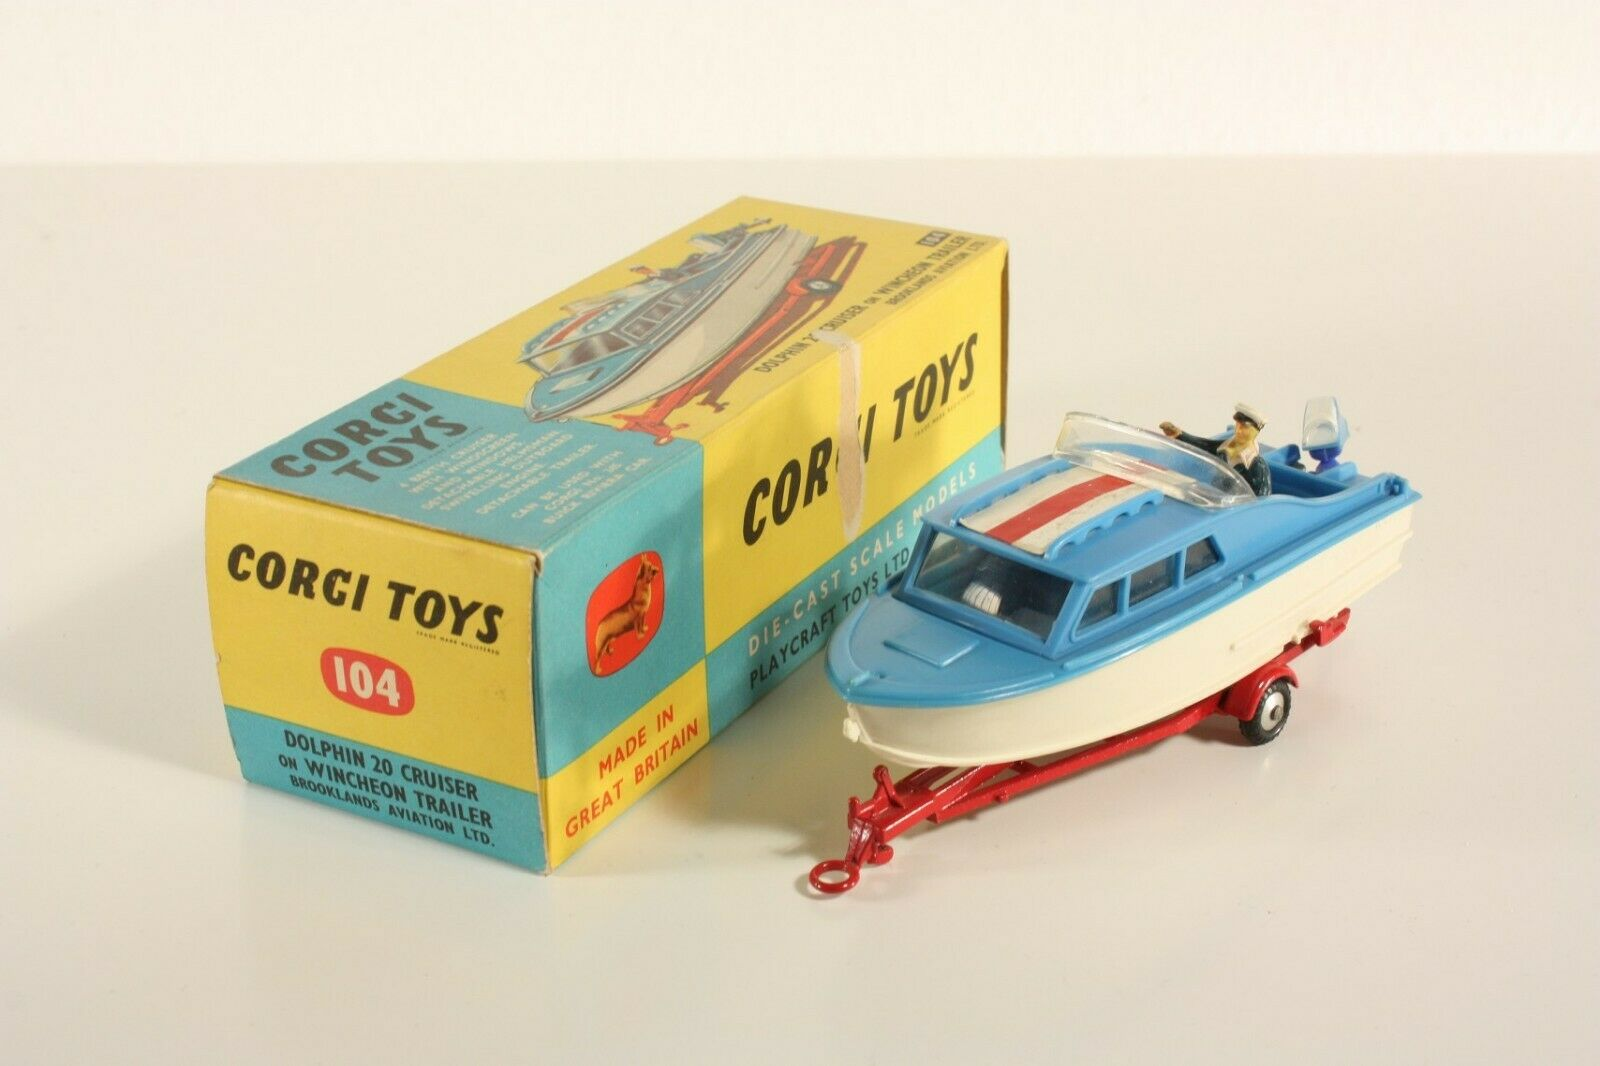 Corgi Toys 104, Dolphin 20 CRUISER ON WINCHEON TRAILER, MINT IN BOX  ab2230